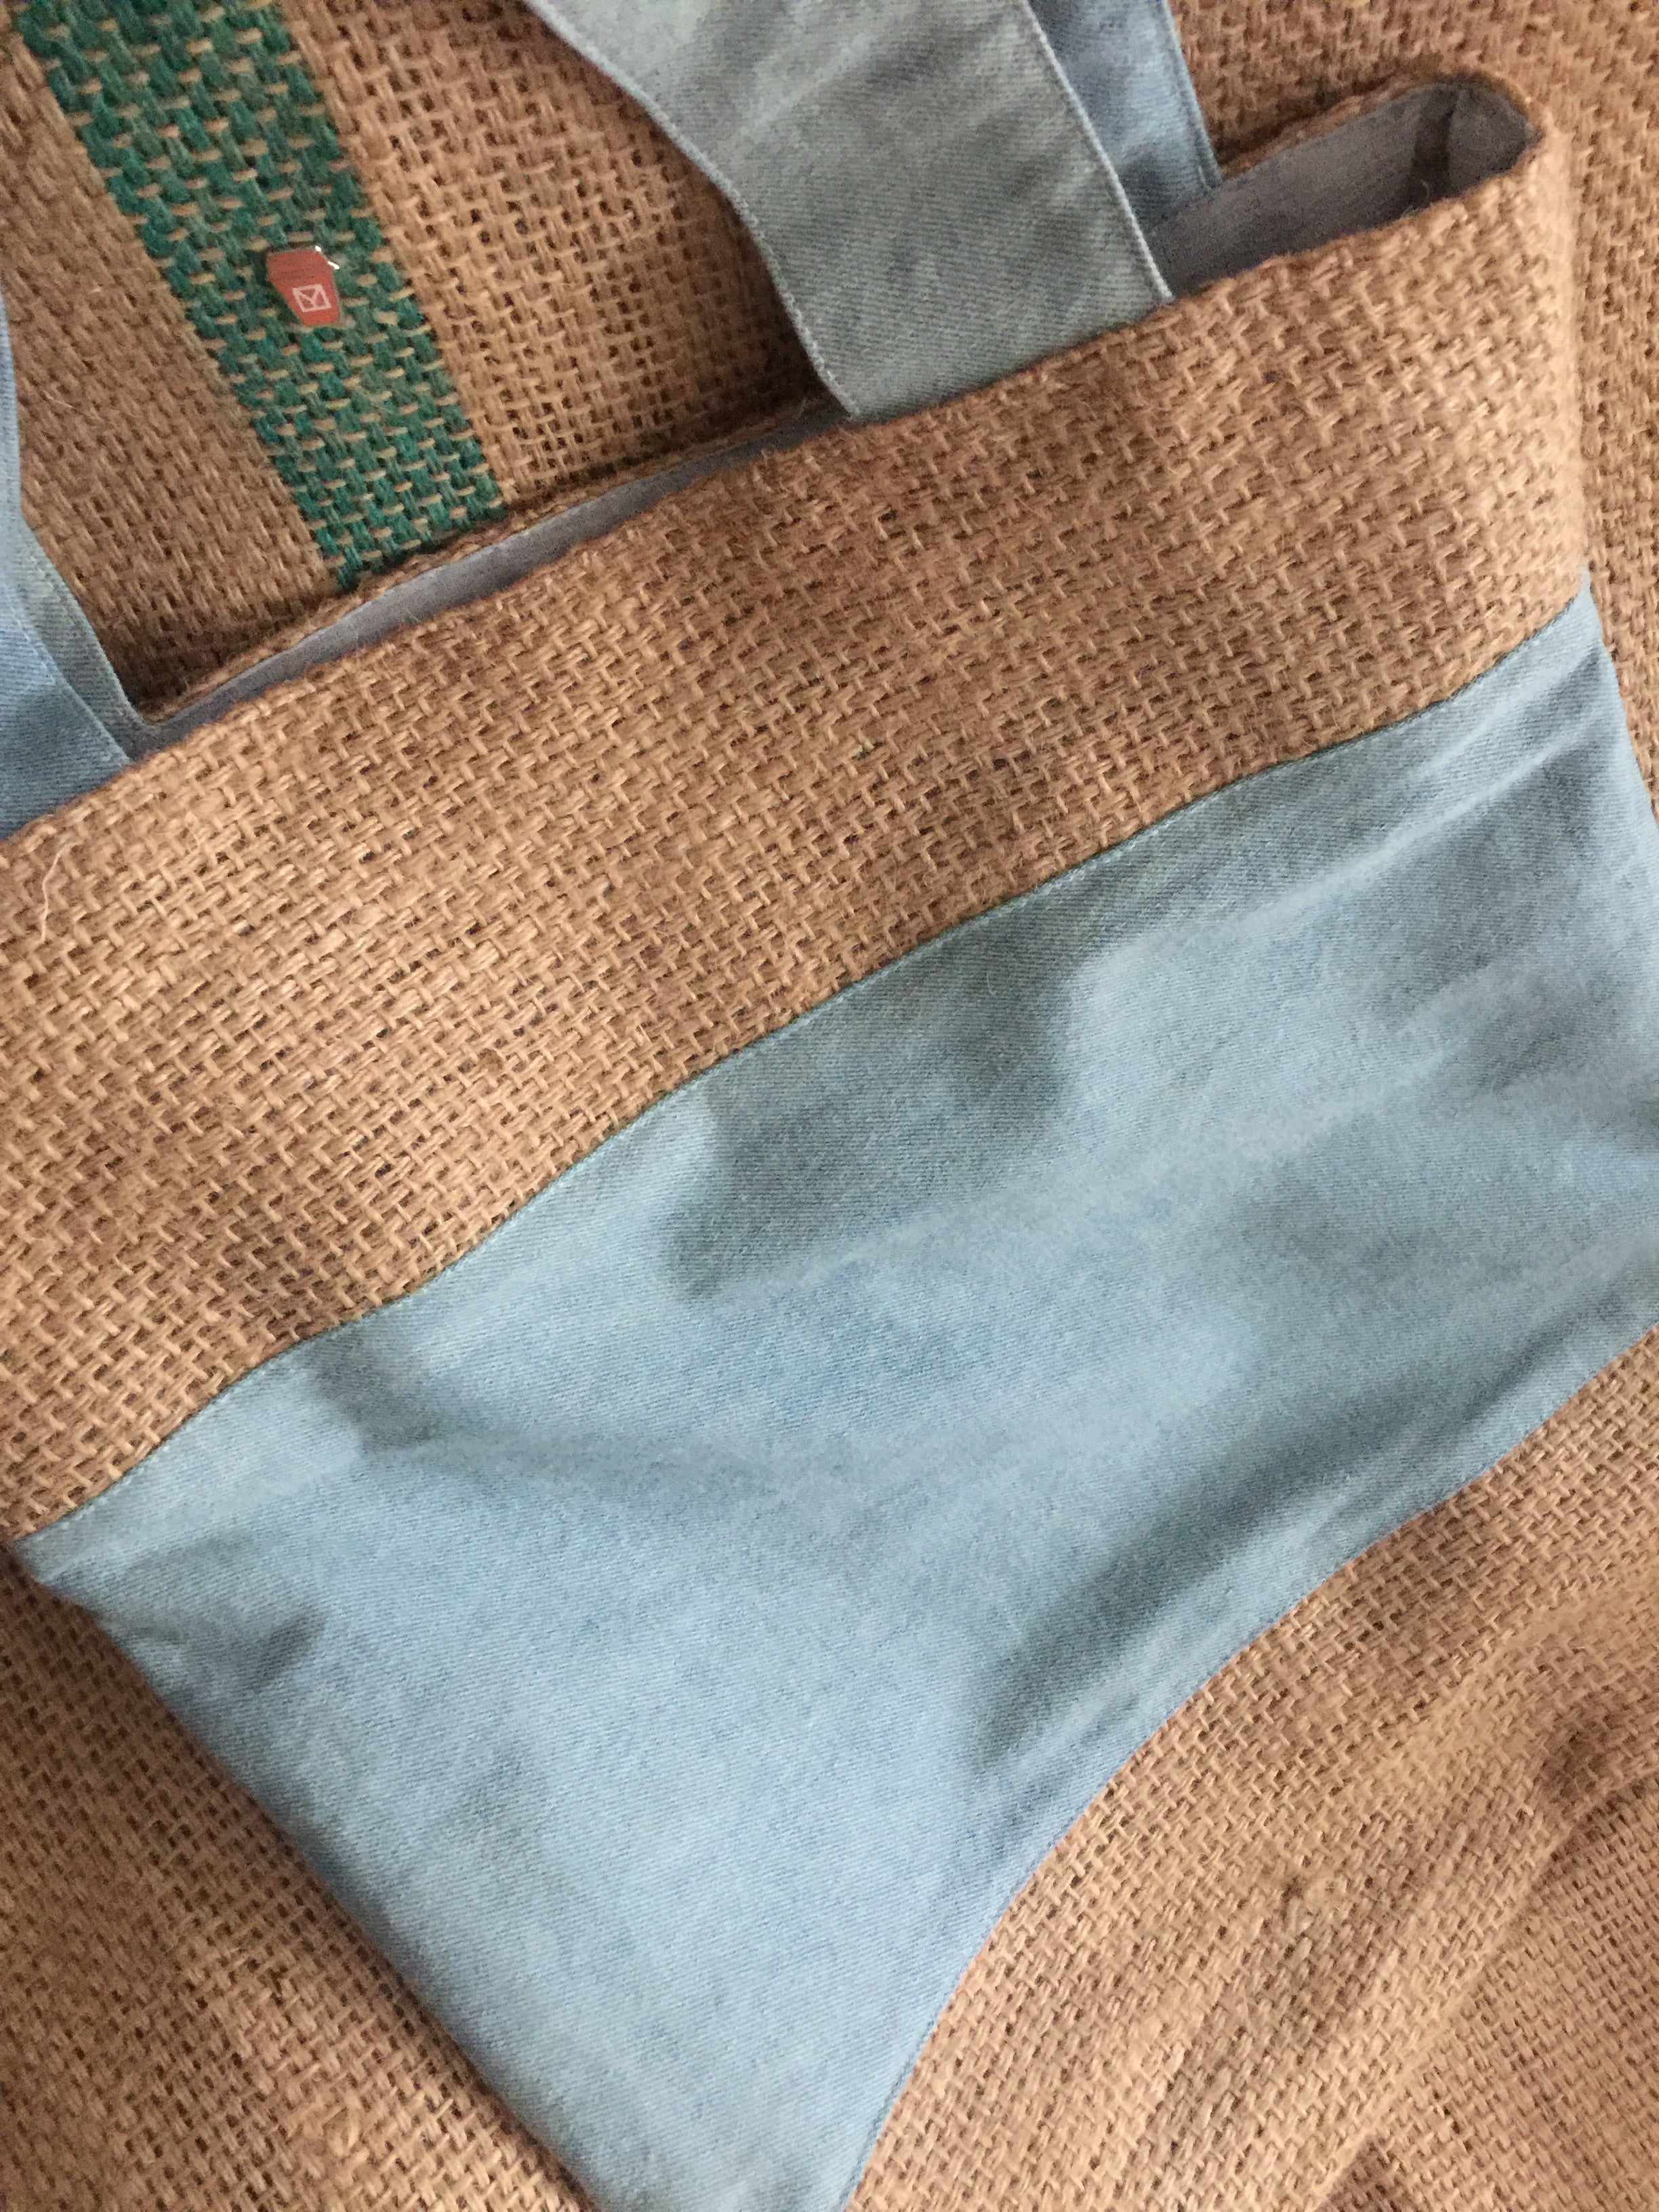 TOTEdo Na TOTEs Bag - Yardstick Coffee -  Blueberry Notes